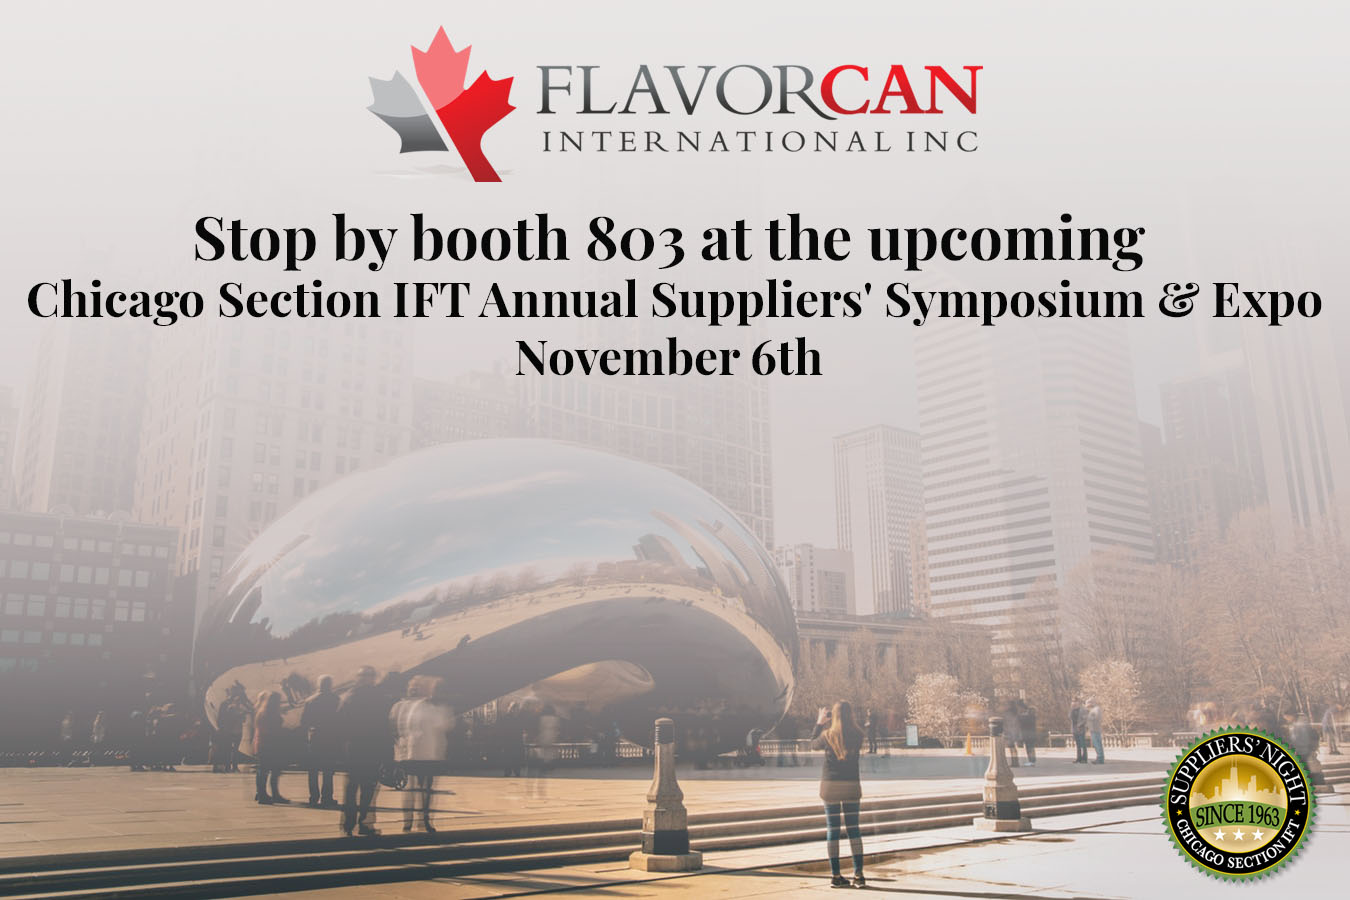 Chicago Section IFT Annual Suppliers' Symposium & Expo